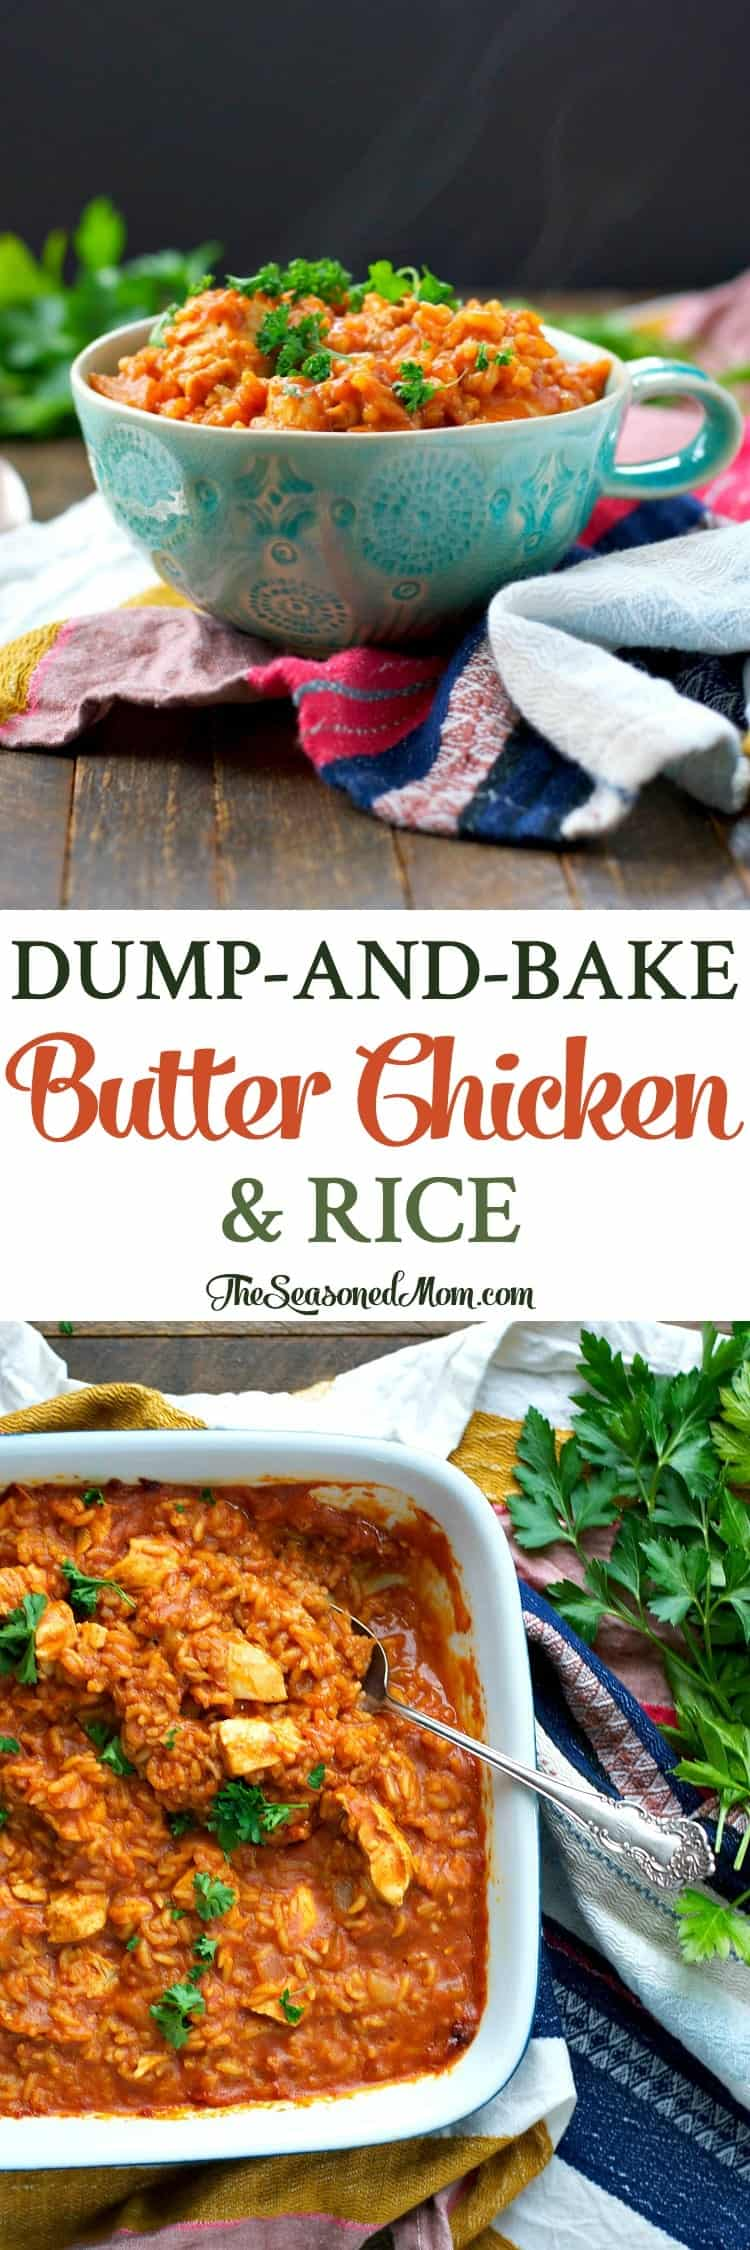 Just 10 minutes of prep for this Dump-and-Bake Butter Chicken and Rice! Even the rice and the chicken cook together in one dish for an easy dinner!